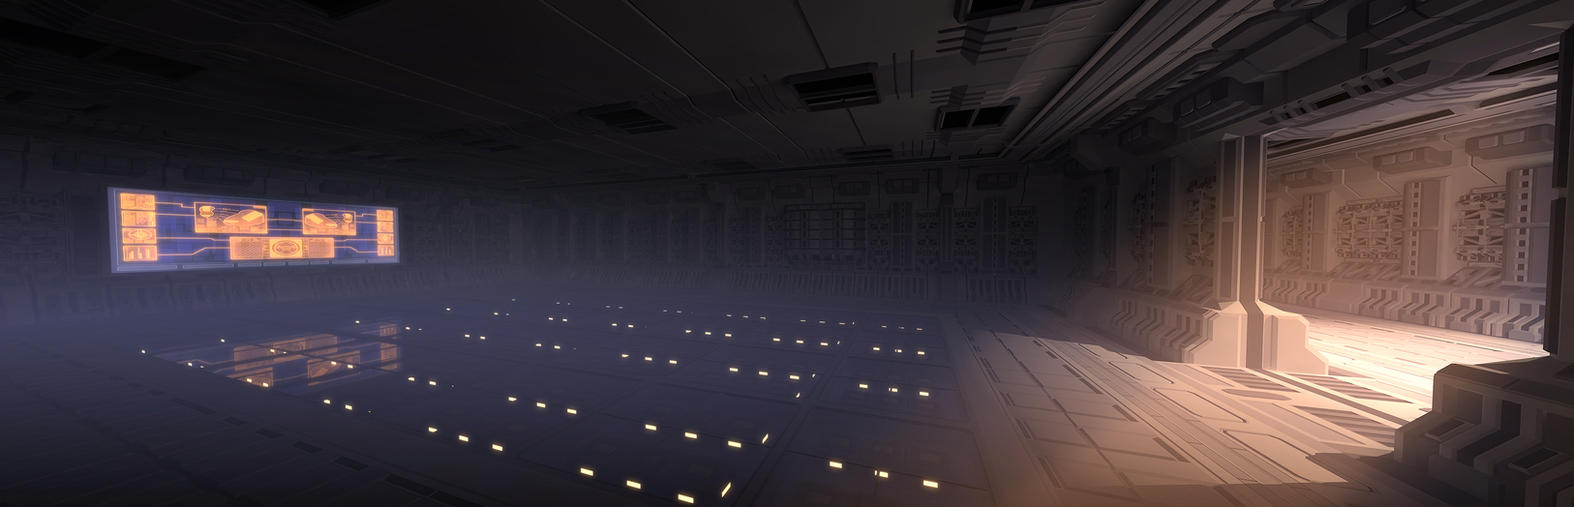 B - Mystère au sous sol 35 Server_room_panorama_by_lorddoomhammer-d7rquzf